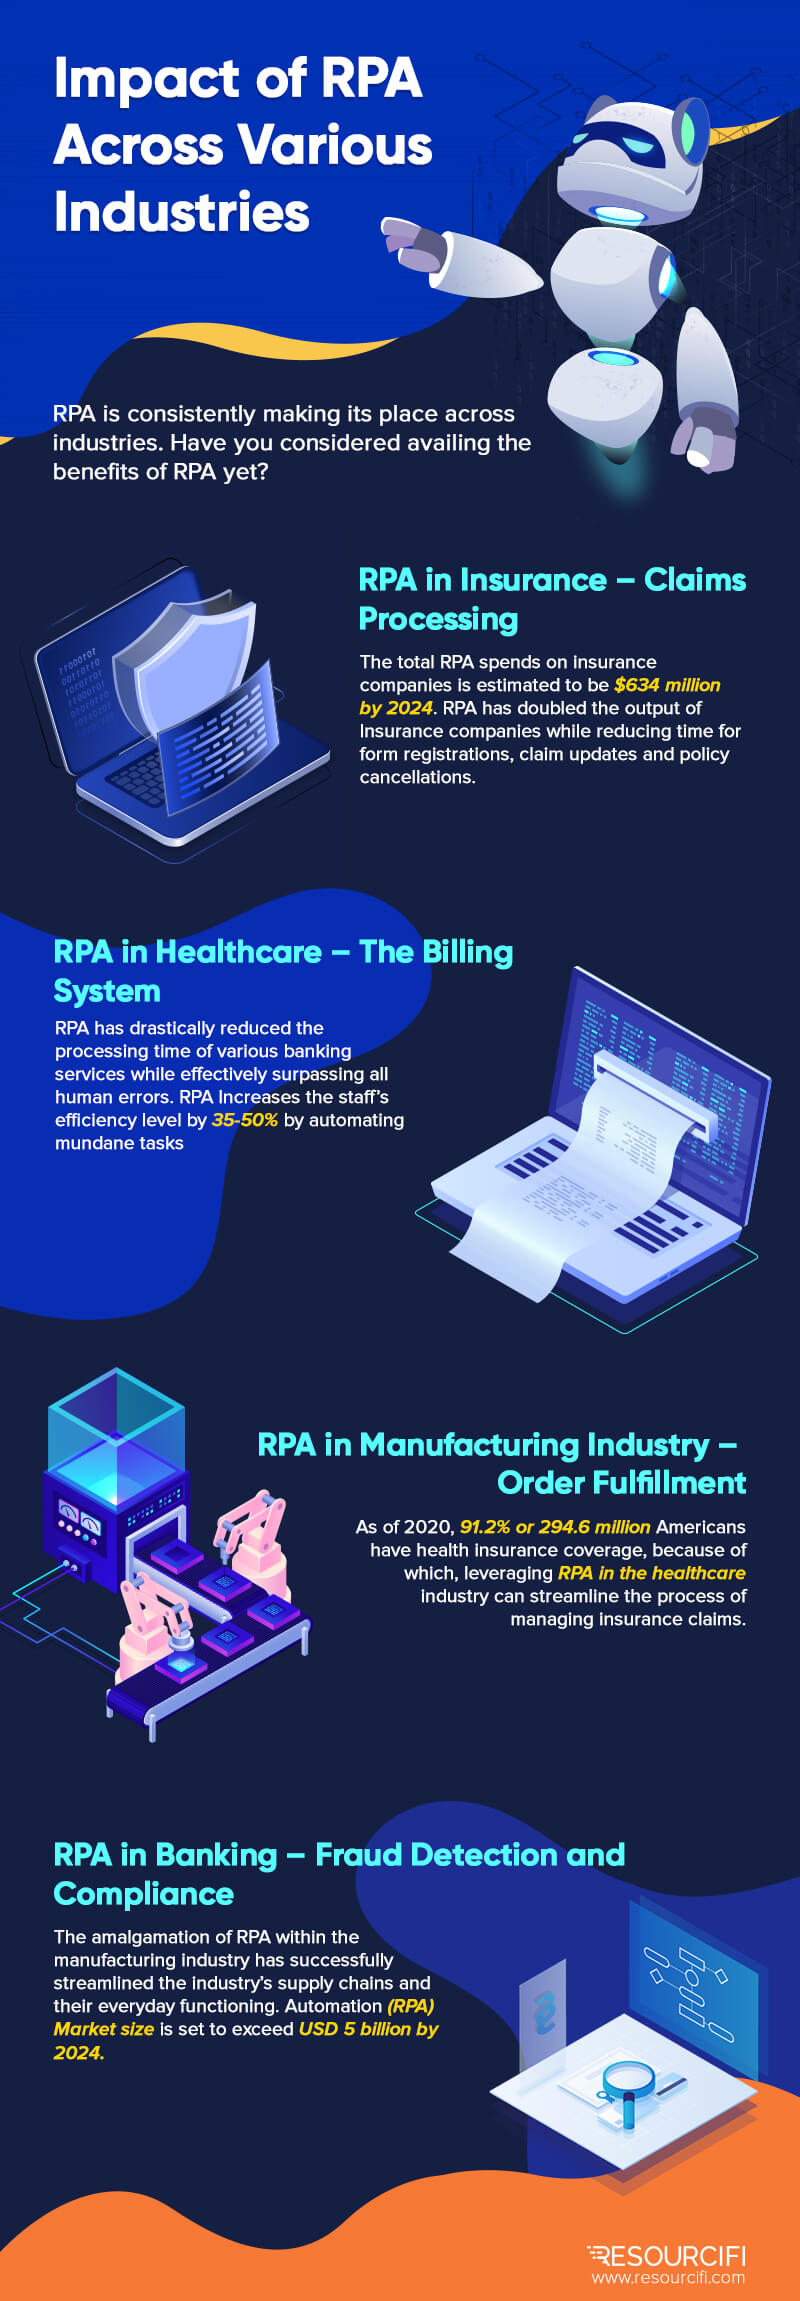 Benfits of RPA across industries